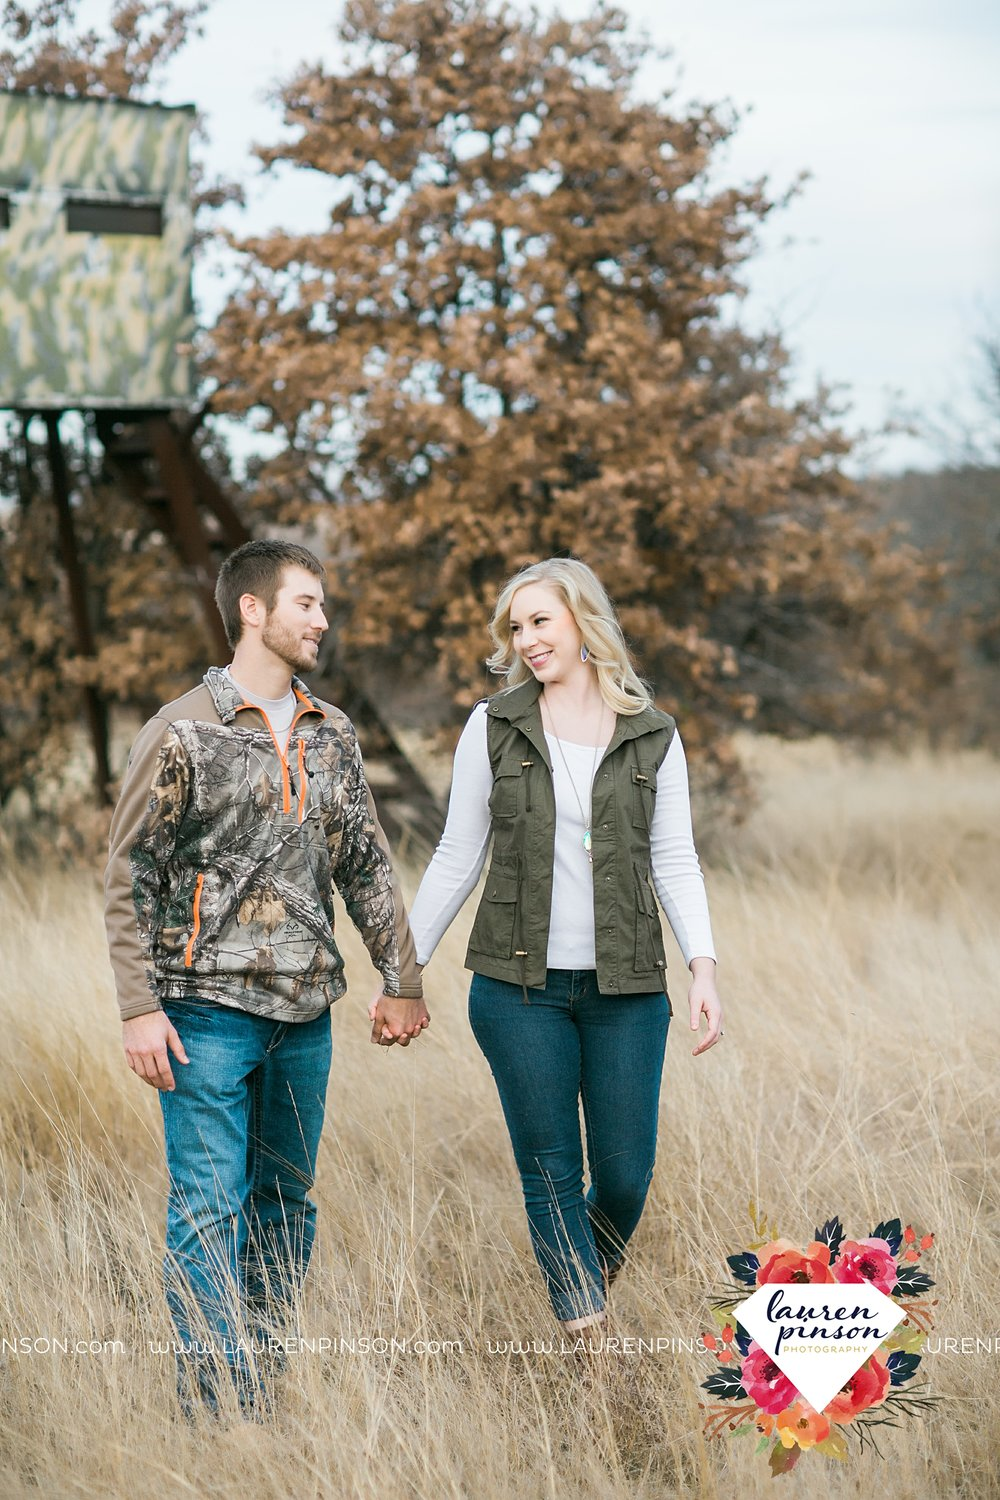 wichita-falls-texas-weddiing-photographer-engagement-session-bowie-texas-old-barn-country-hunting_4029.jpg